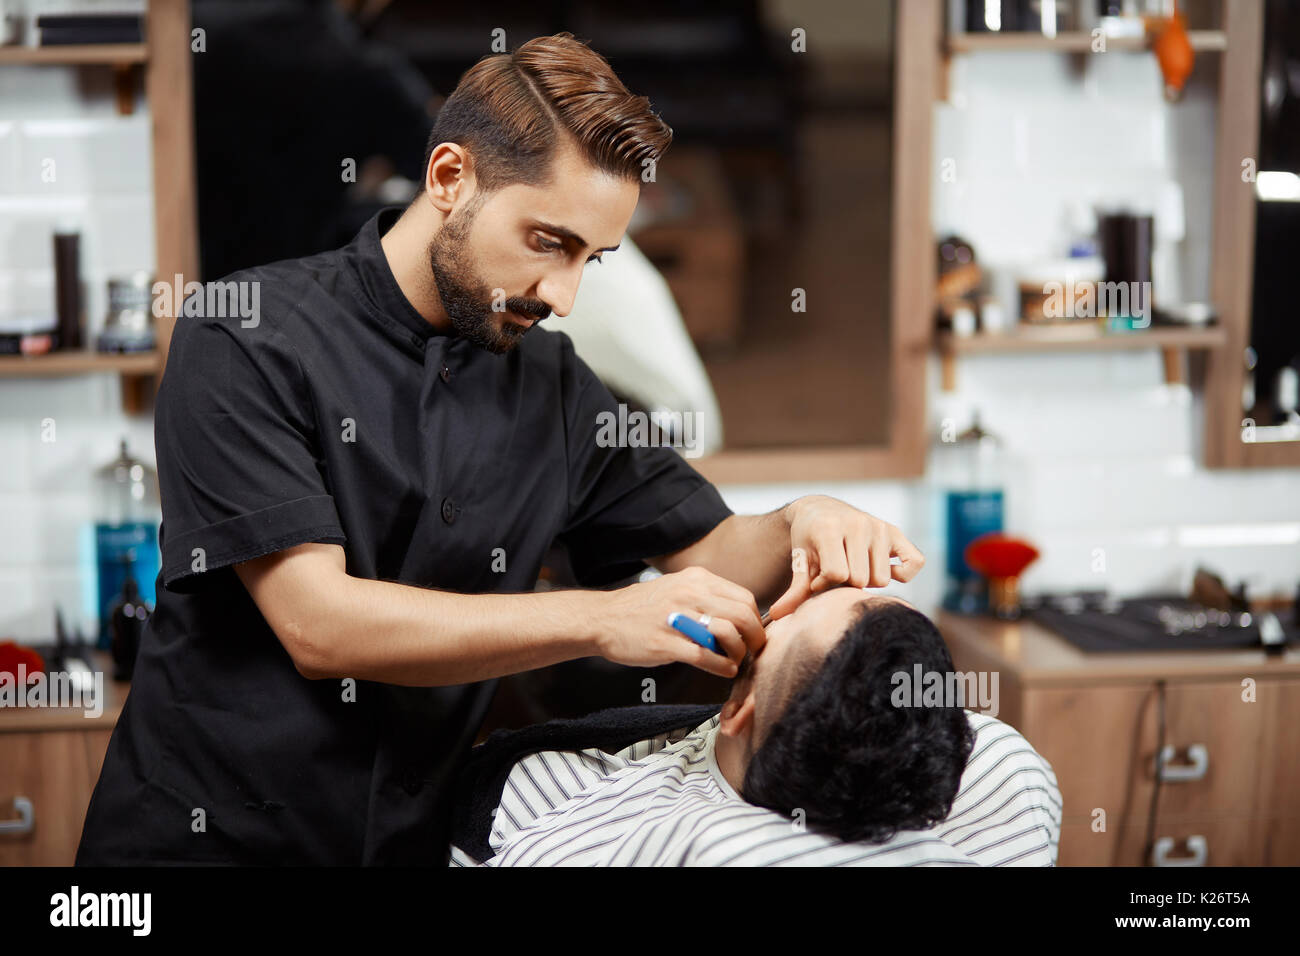 Hairstylist cutting bread of client in modern barber. - Stock Image